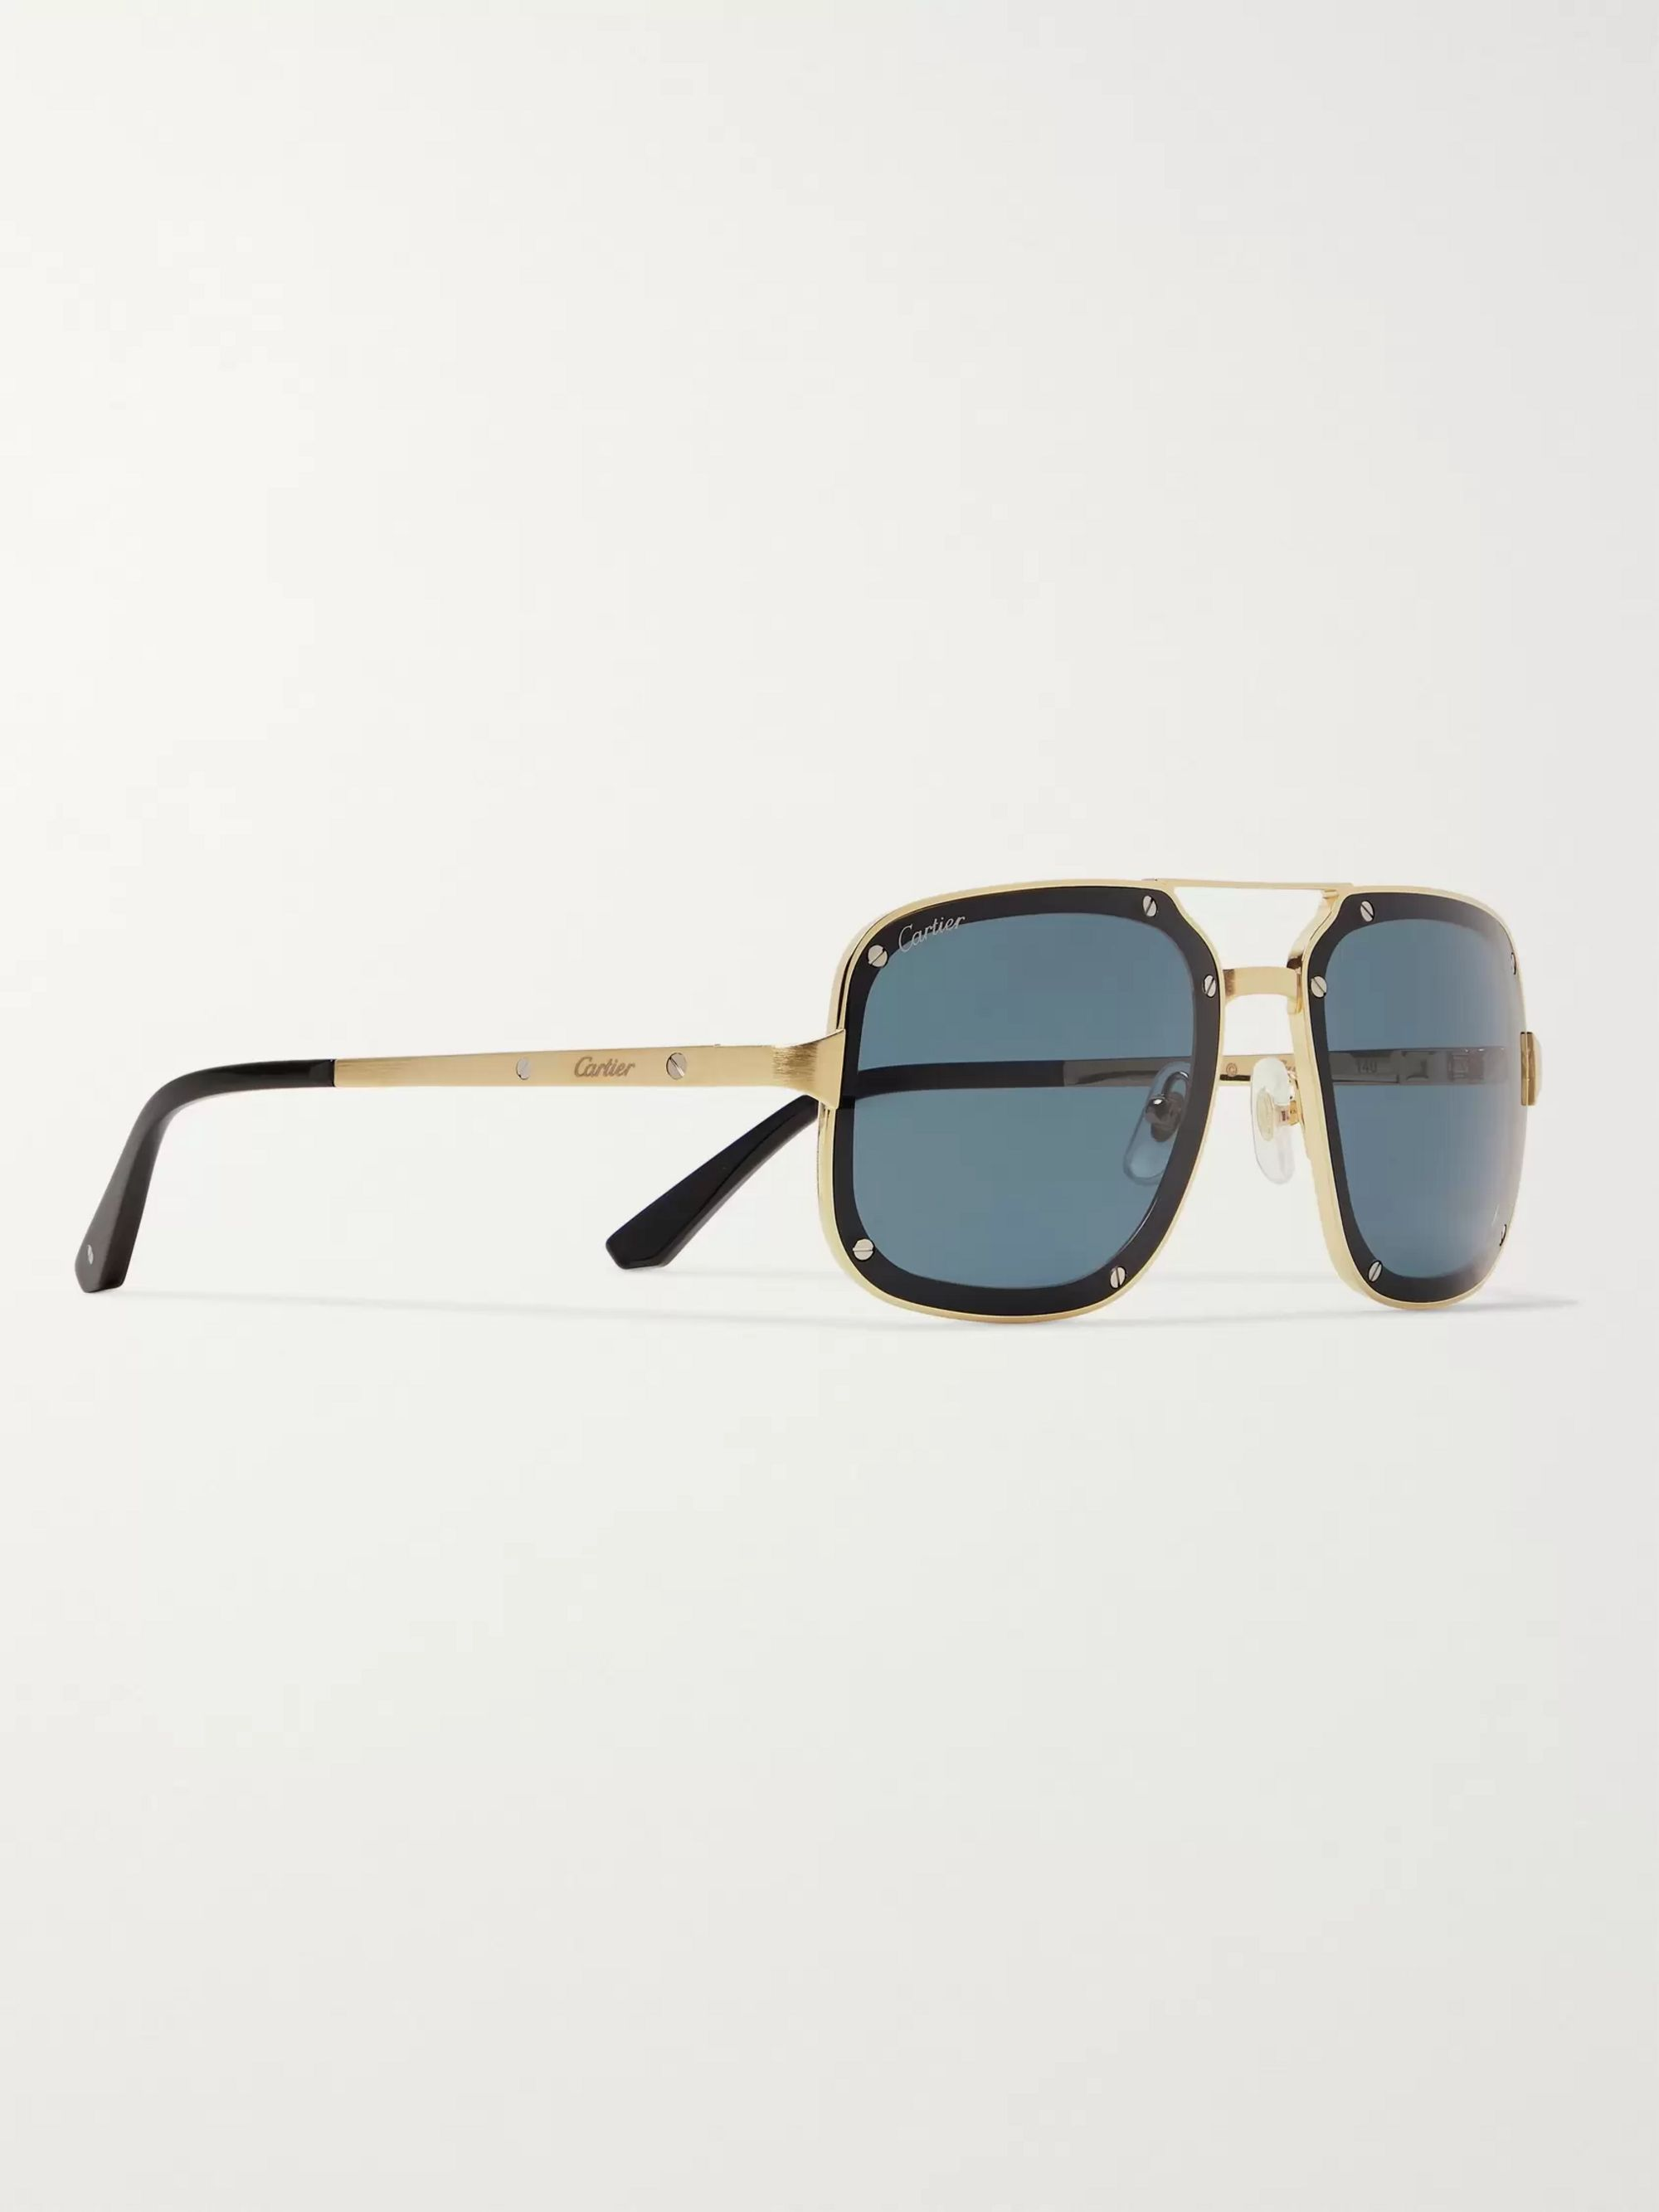 Cartier Eyewear Aviator-Style Gold-Tone and Acetate Sunglasses